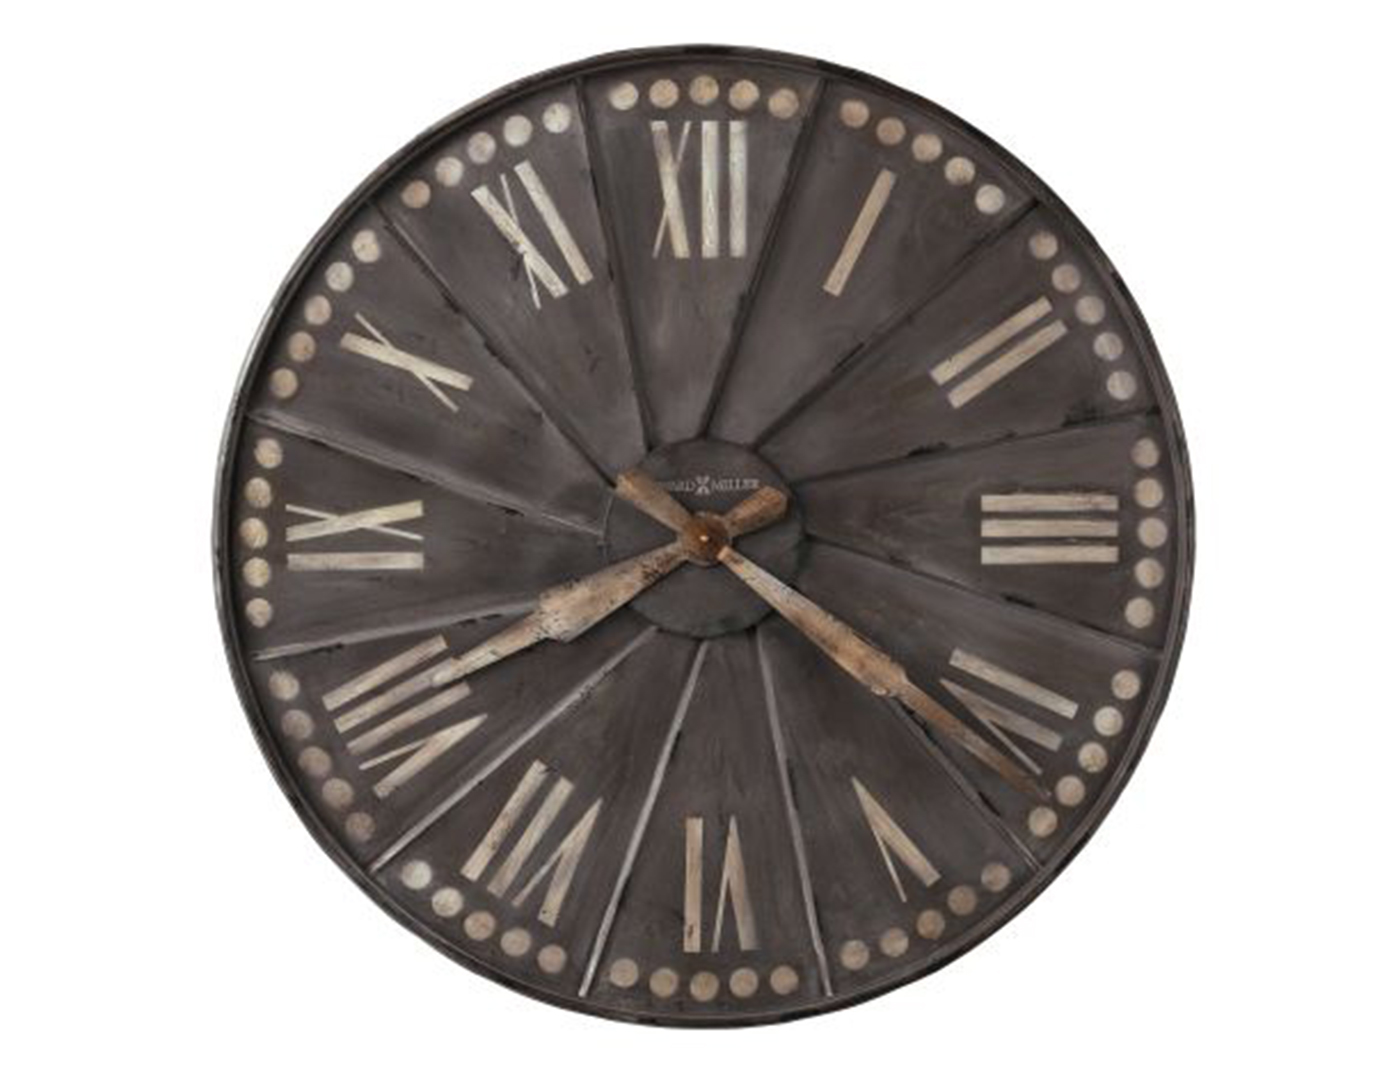 Howard Miller Ant.Charcoal Wall Clock 35""